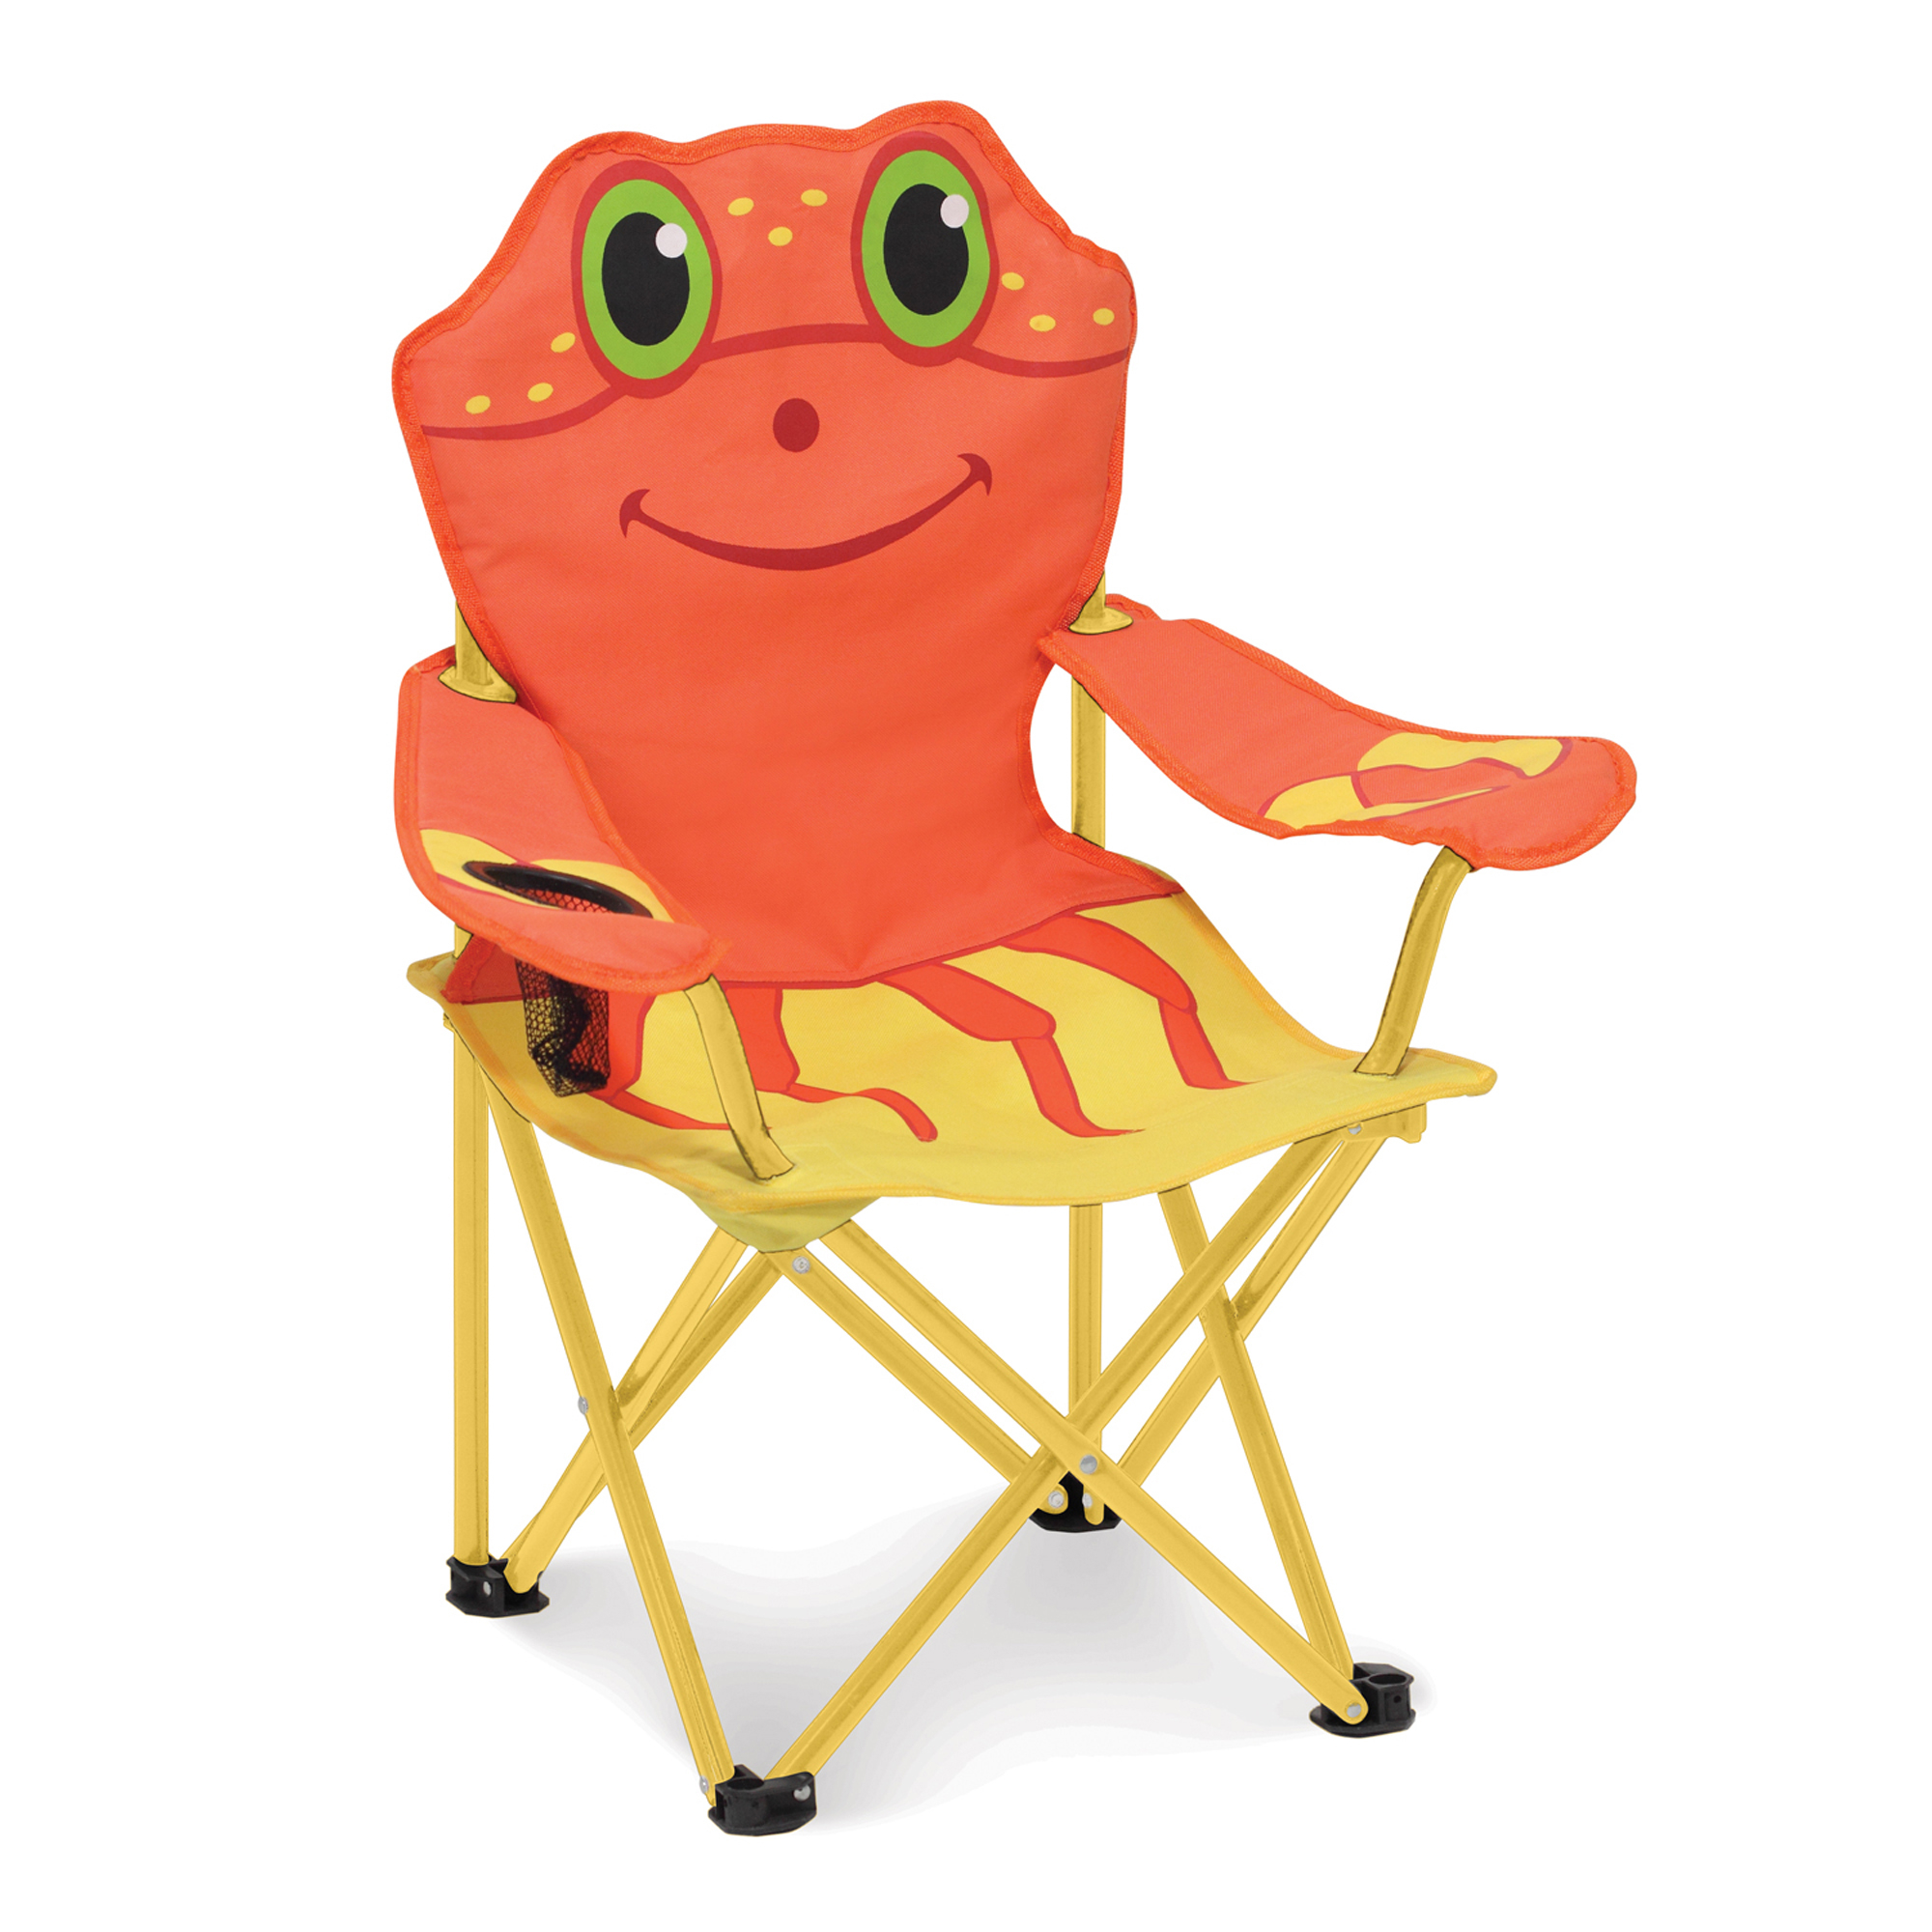 Clicker Crab Childs Outdoor Chair